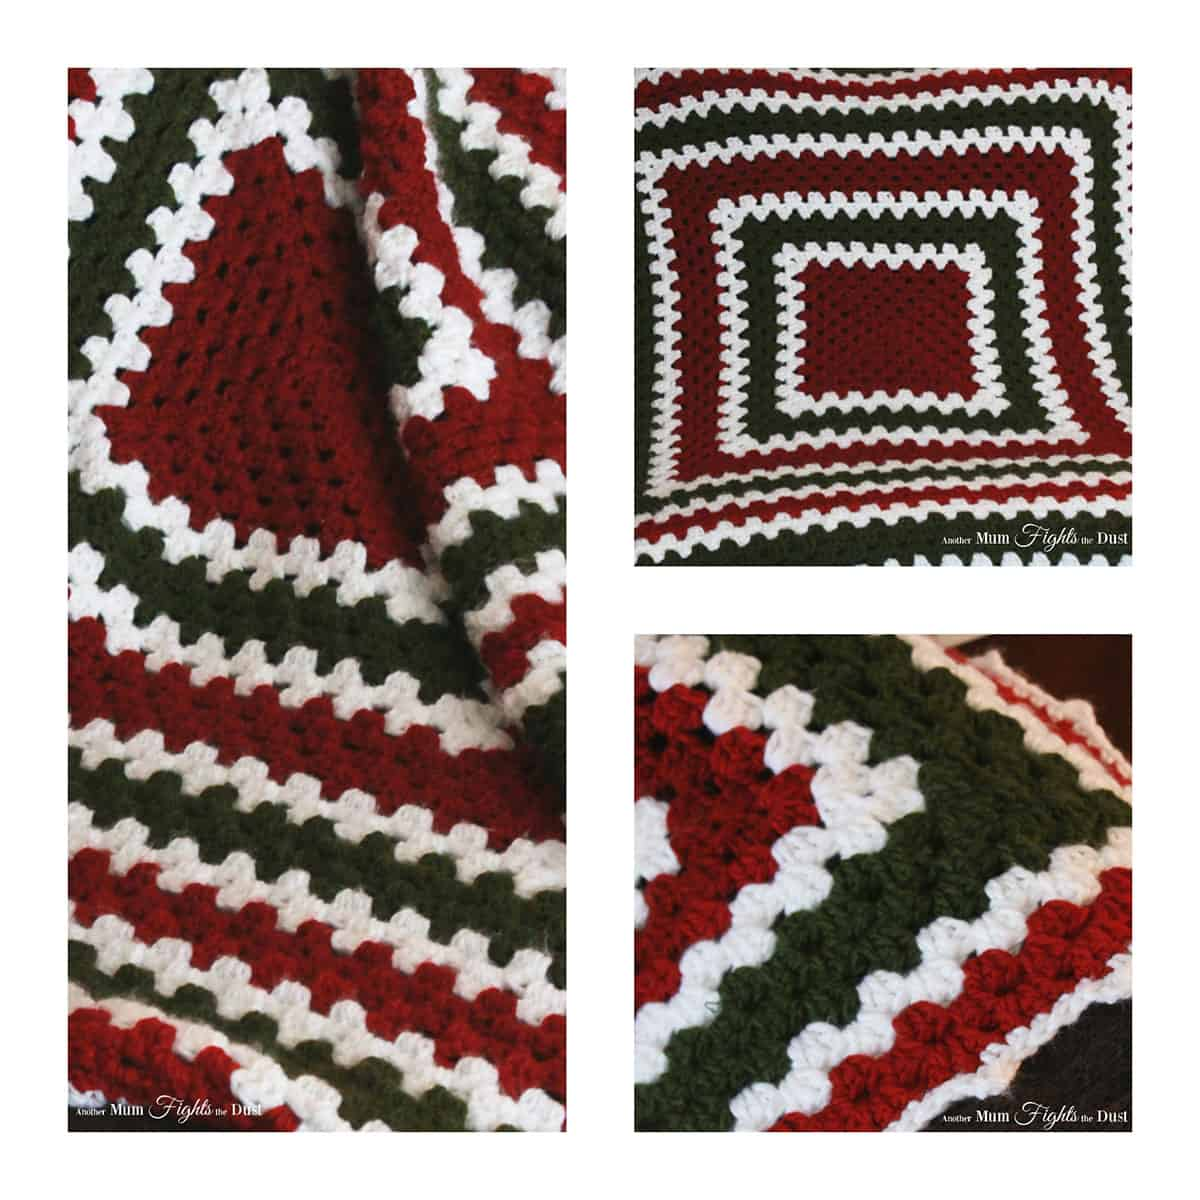 Christmas Crochet Blanket Free Pattern.Easy Crochet Blanket Free Pattern Another Mum Fights The